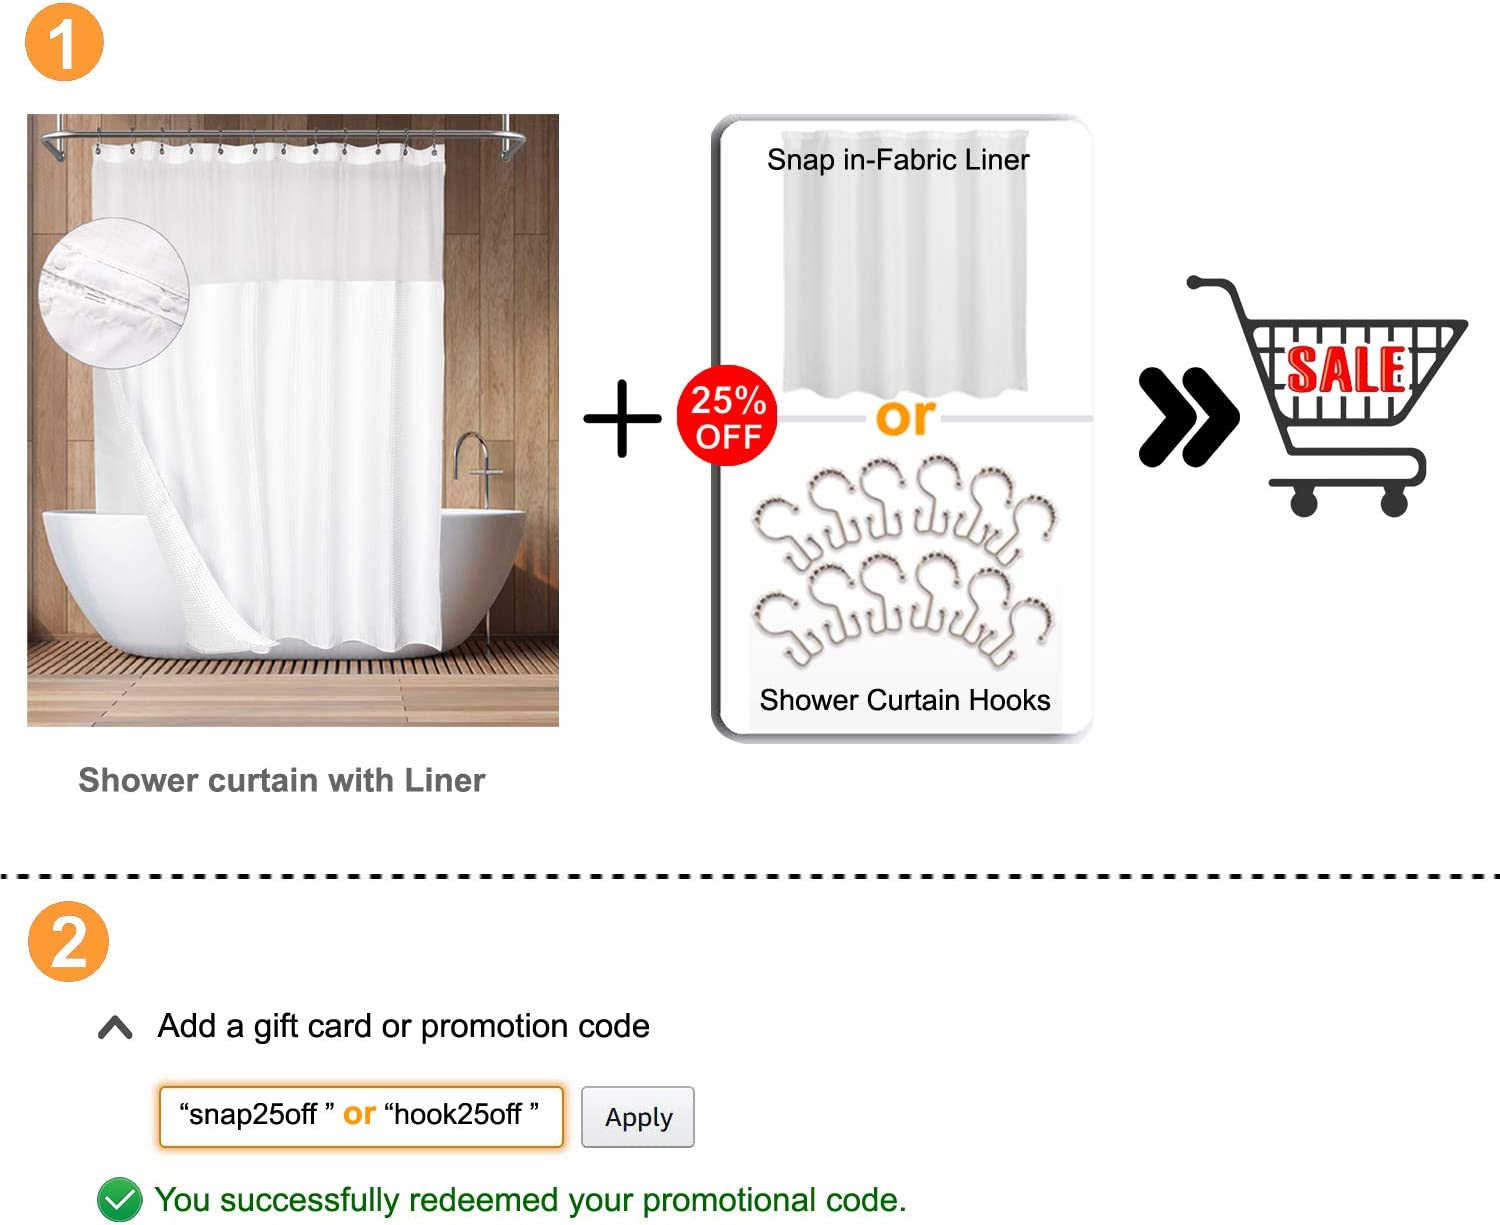 Hotel Style Cotton Shower Curtain with Snap-in Fabric Liner, Mesh Window Top, Honeycomb Waffle Weave Cotton Blend Fabric, Washable, White, 71x72 Inches: Home & Kitchen